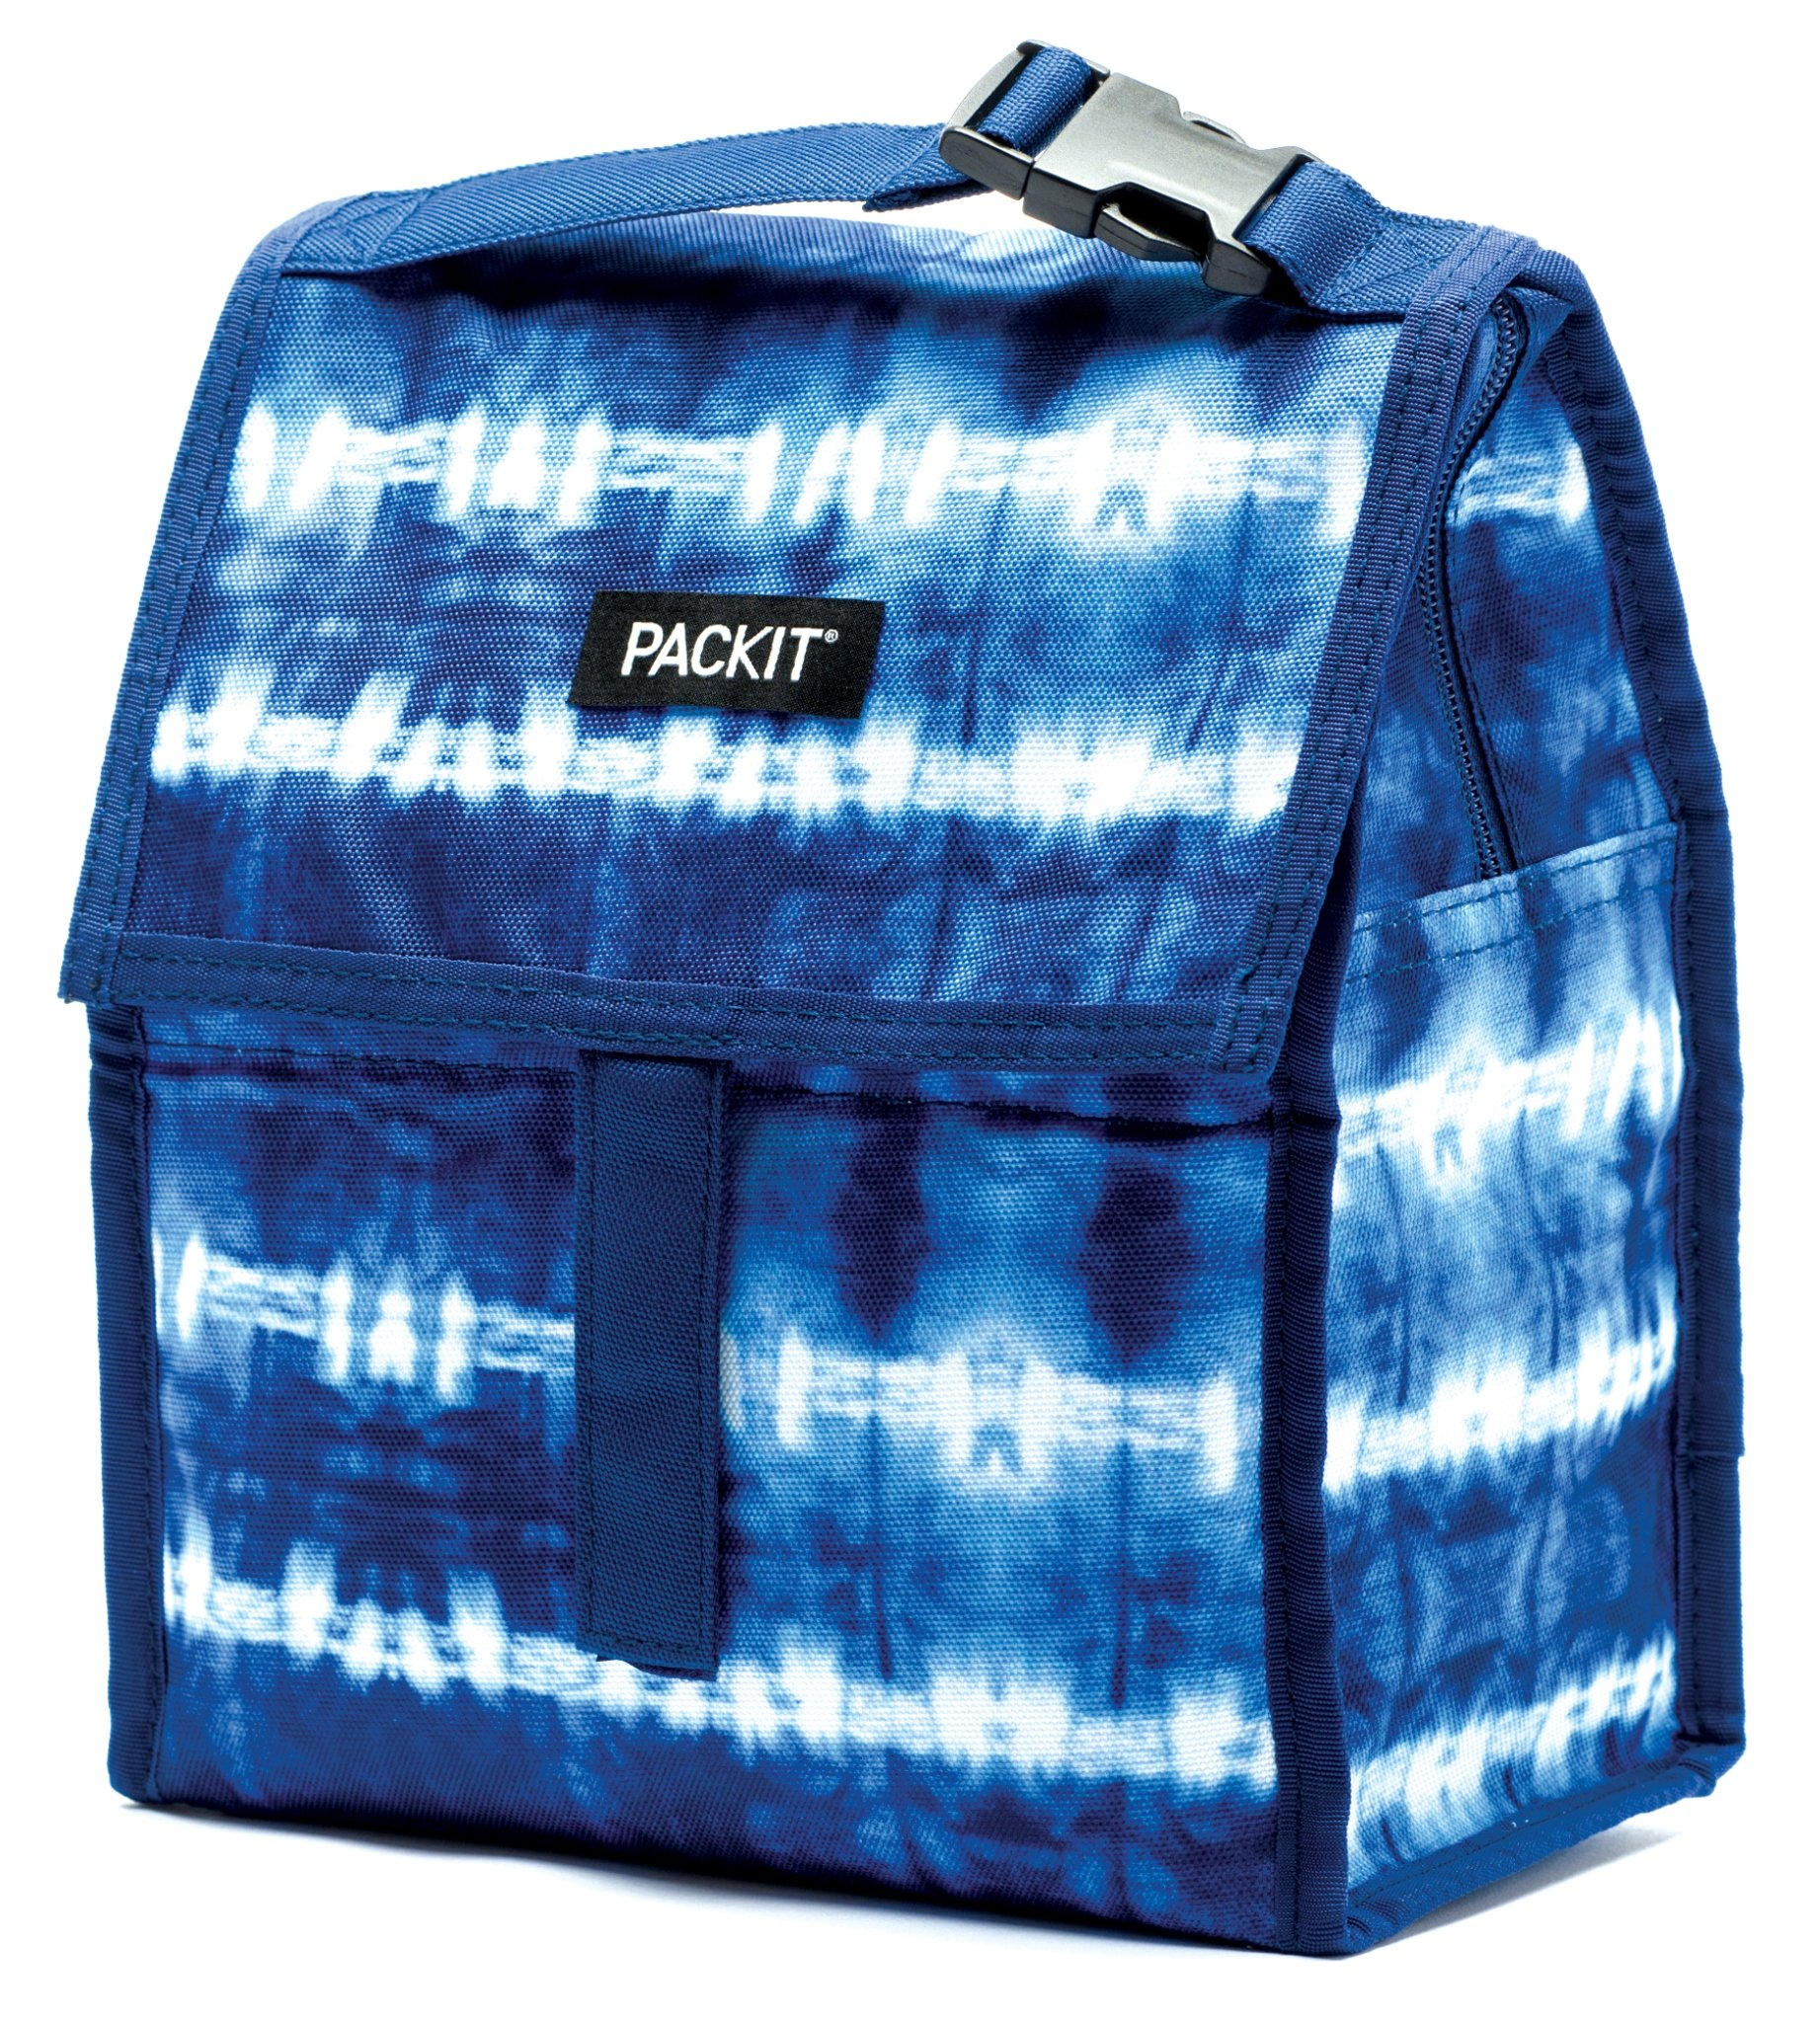 PackIt Freezable Lunch Bag with Zip Closure, Tie Dye by PackIt